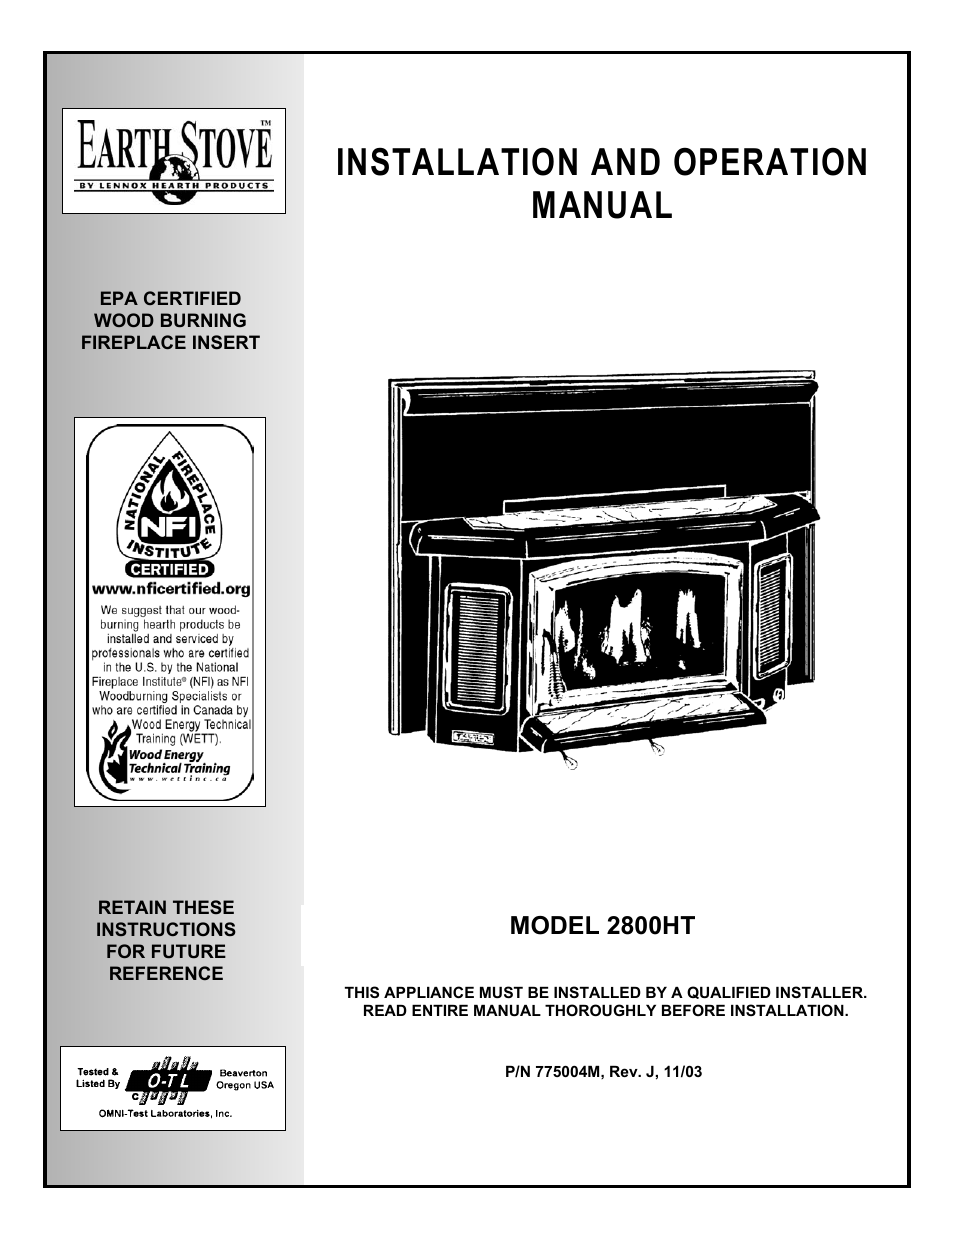 Lg Earth Stove 2800ht User Manual